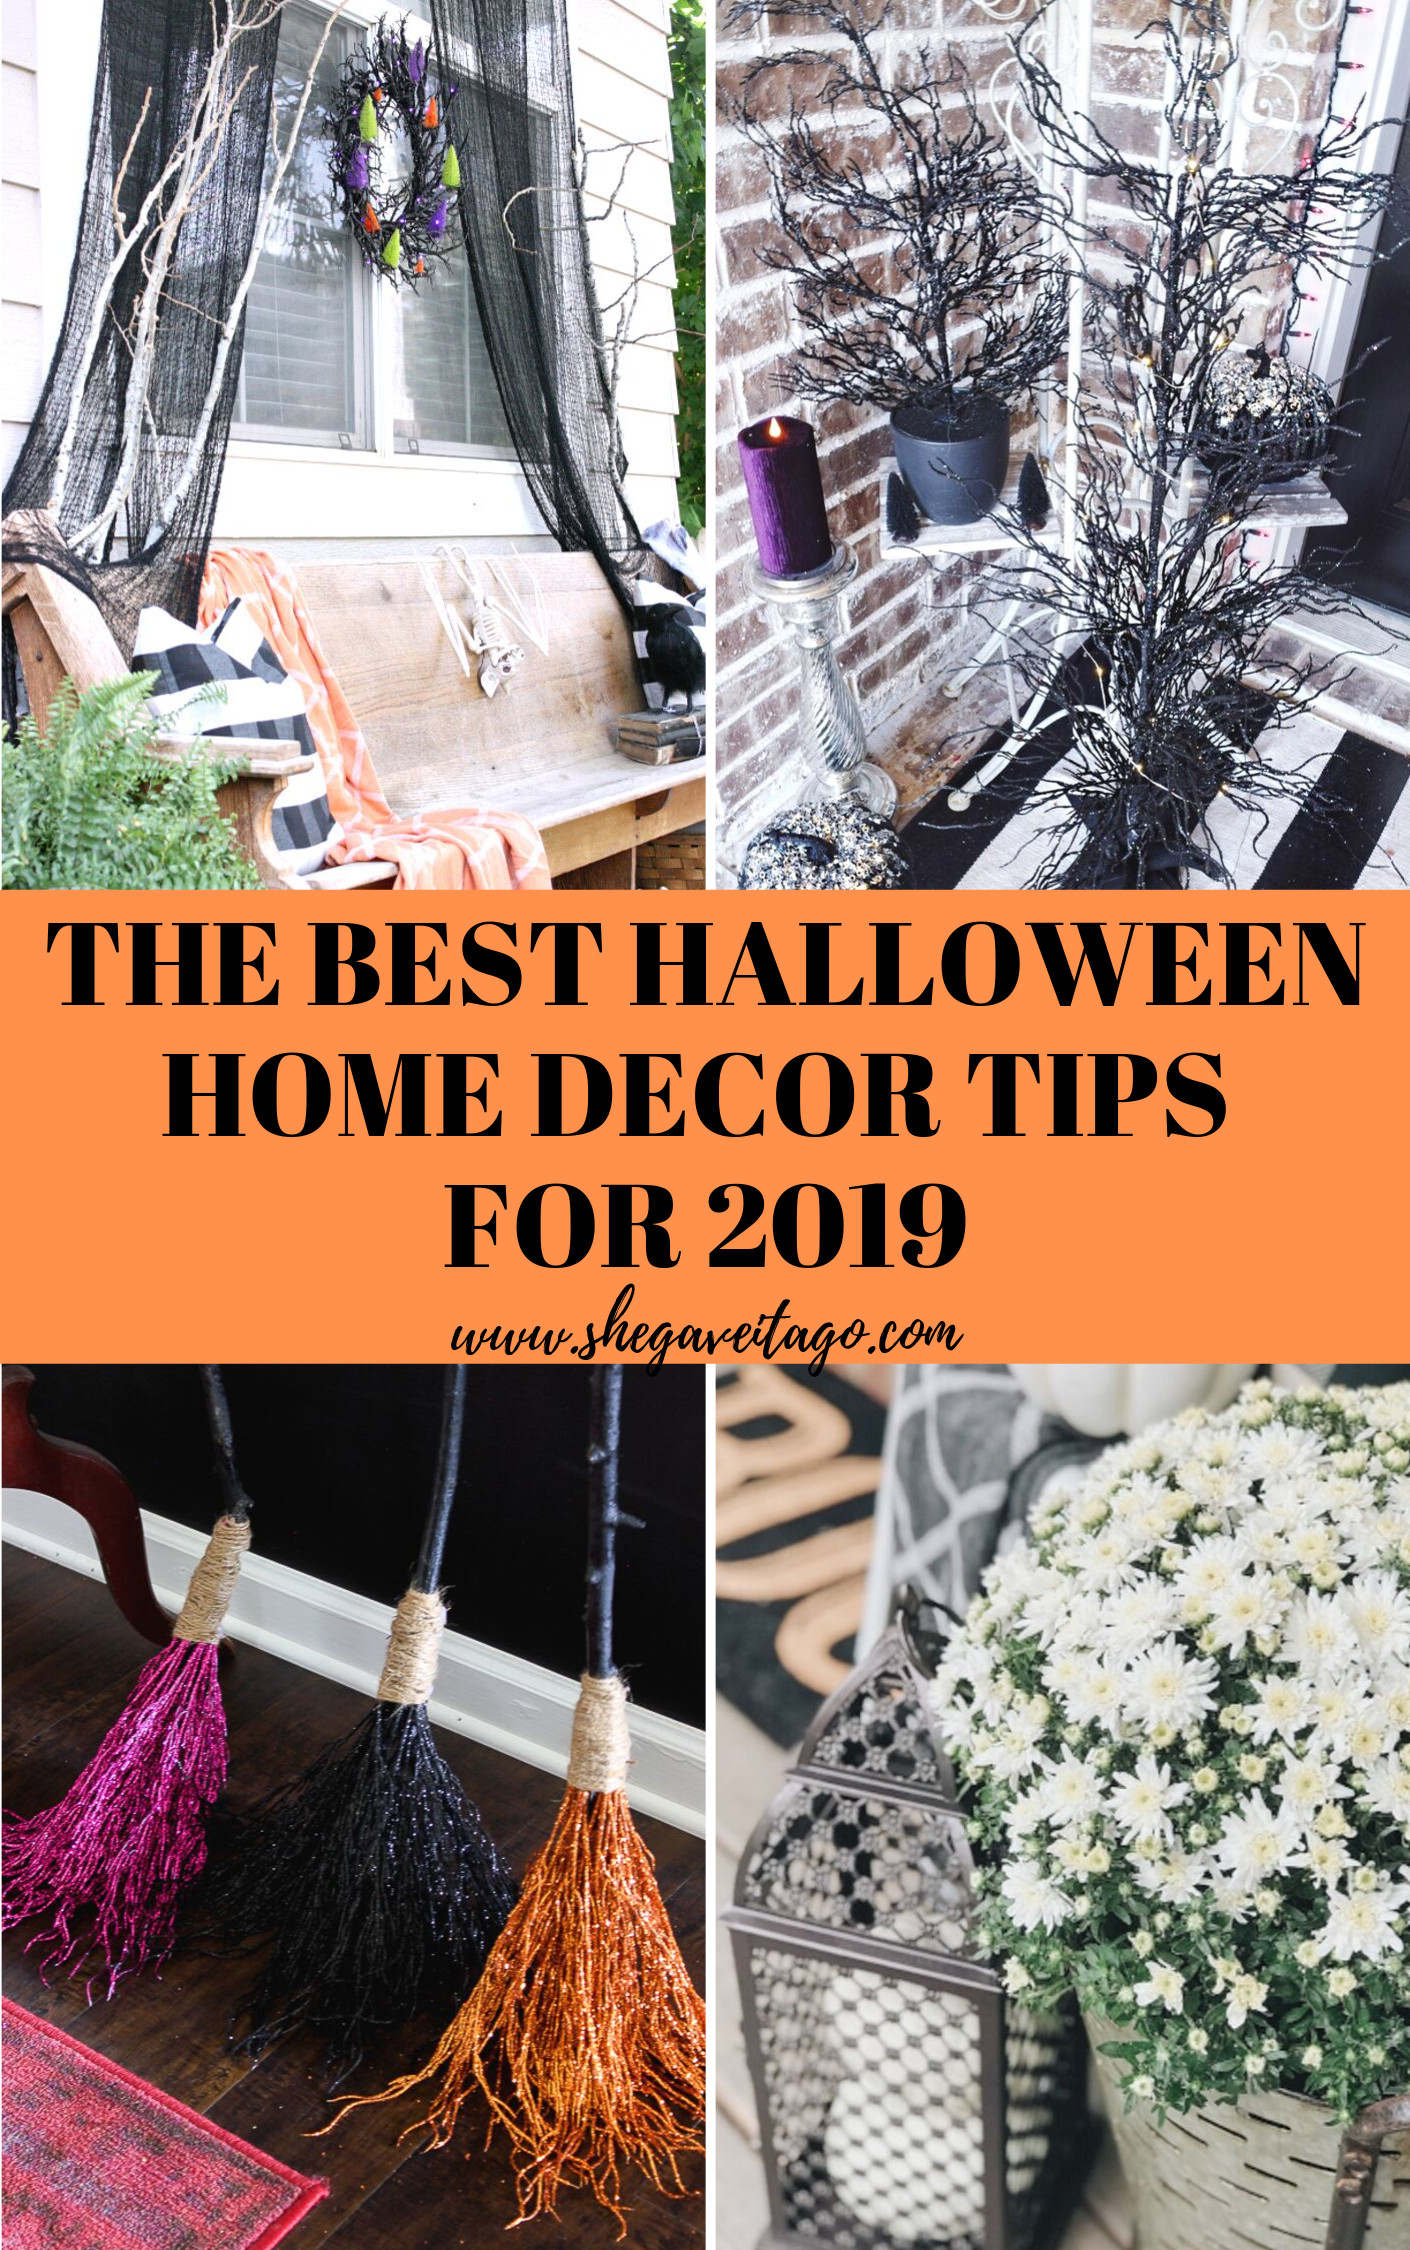 The Best Halloween Home Decor Tips For 2019.png